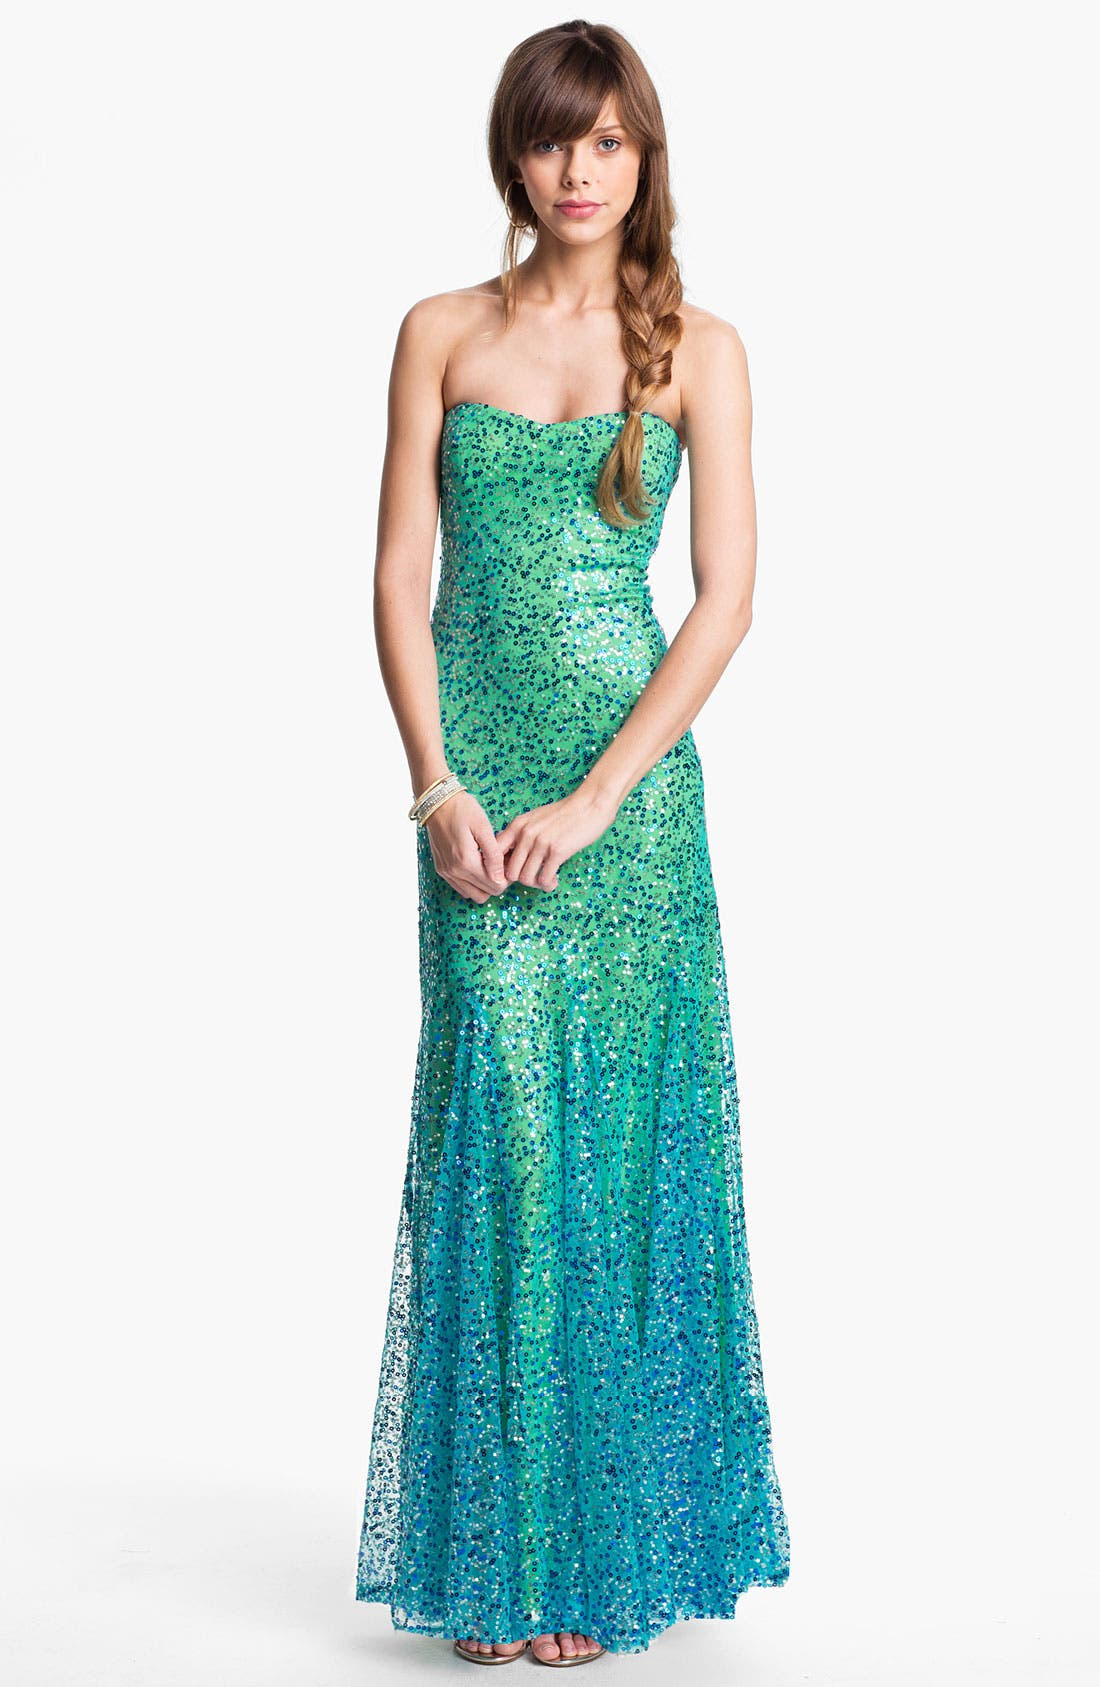 Alternate Image 1 Selected - As U Wish Strapless Sequin Ombré Mermaid Gown (Juniors)